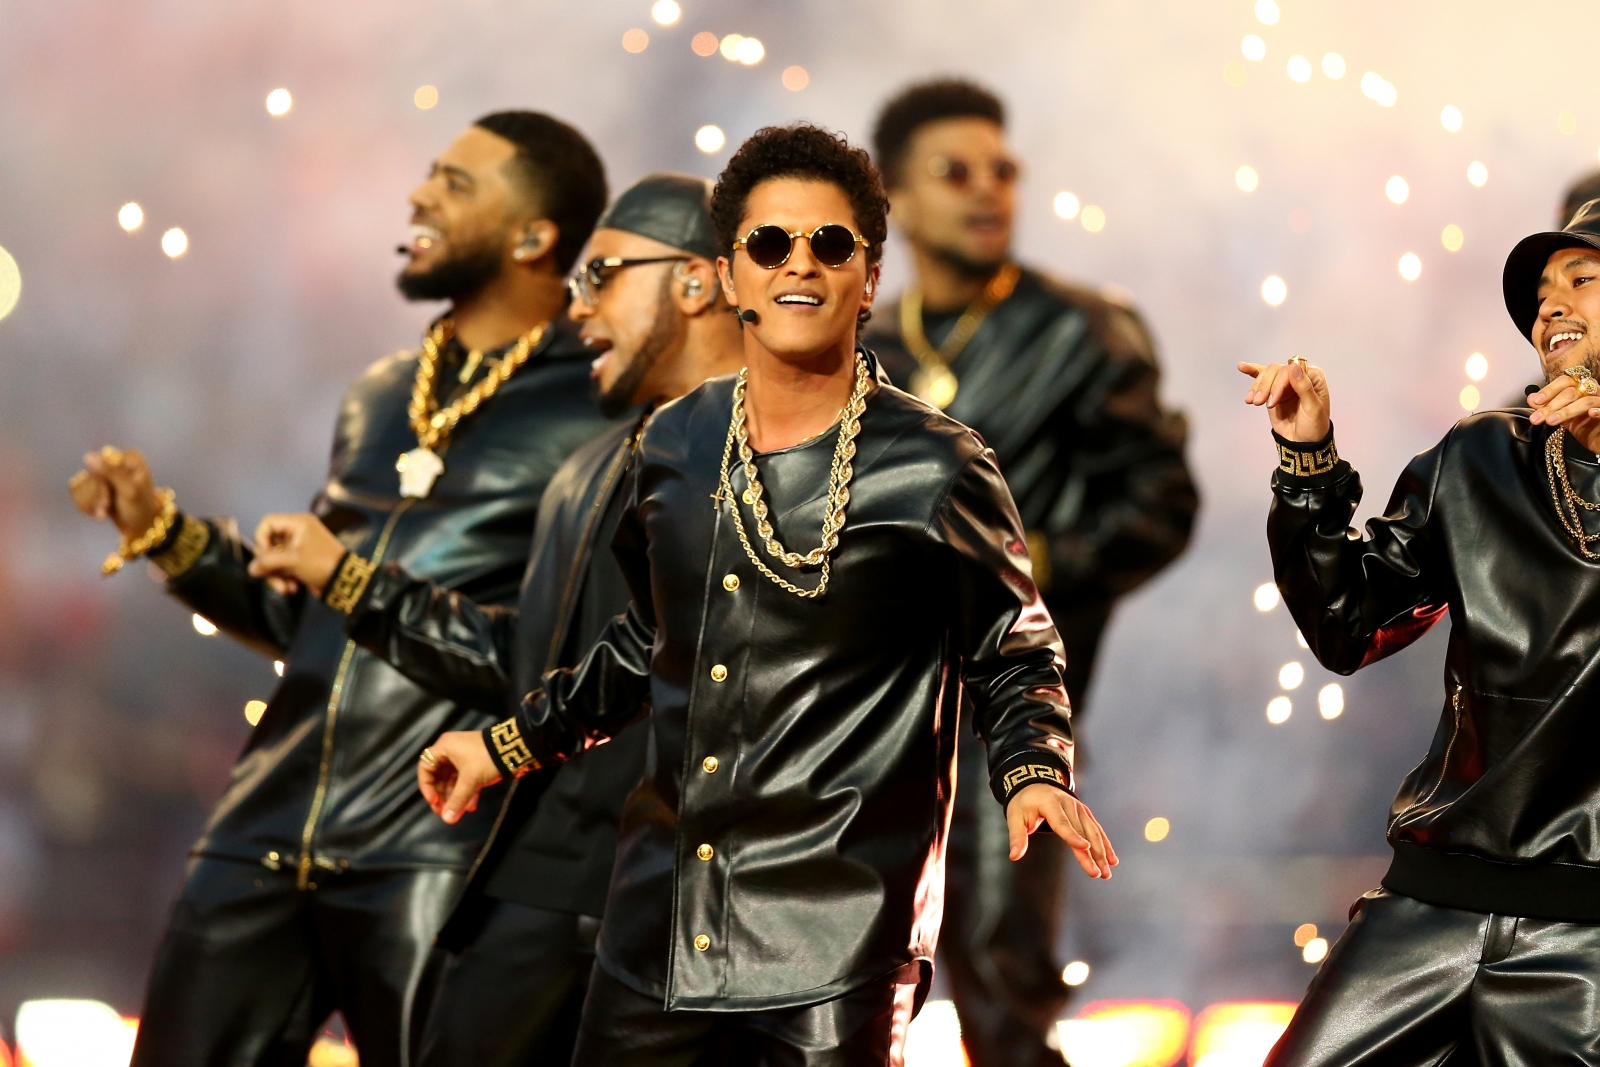 Bruno Mars Wows Houston With Super Bowl Warm-up Show